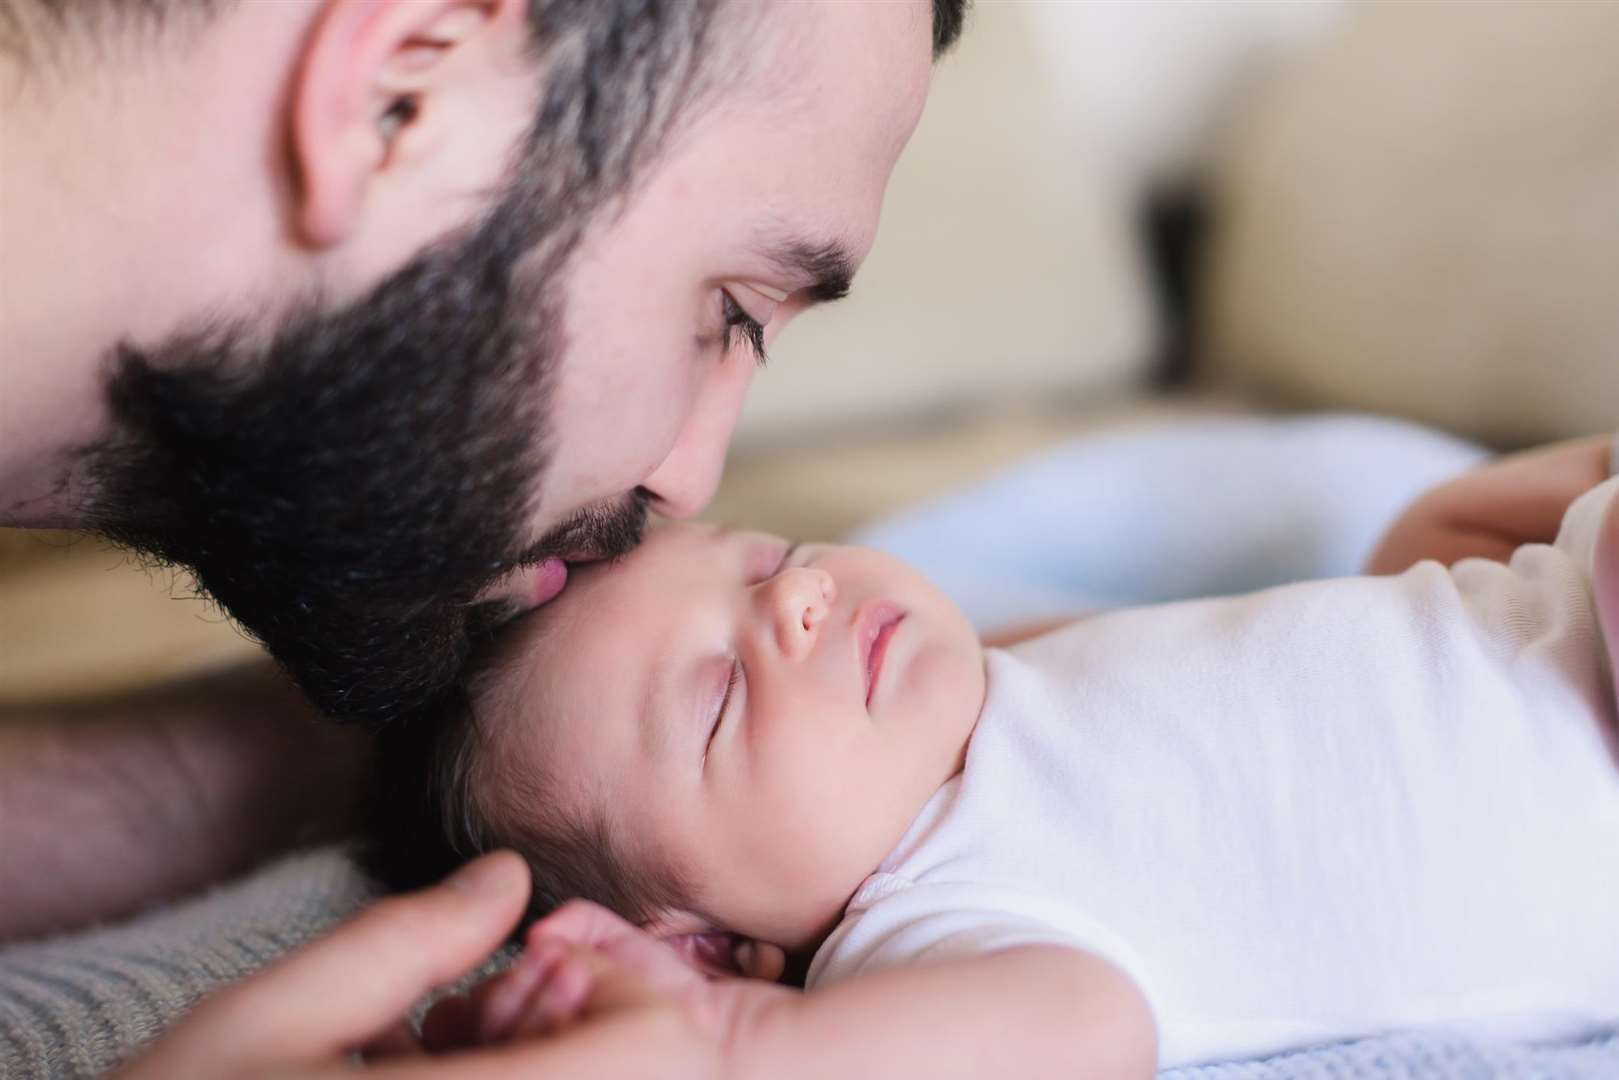 47% of dads-to-be admit they weren't at all prepared for their role at the hospital